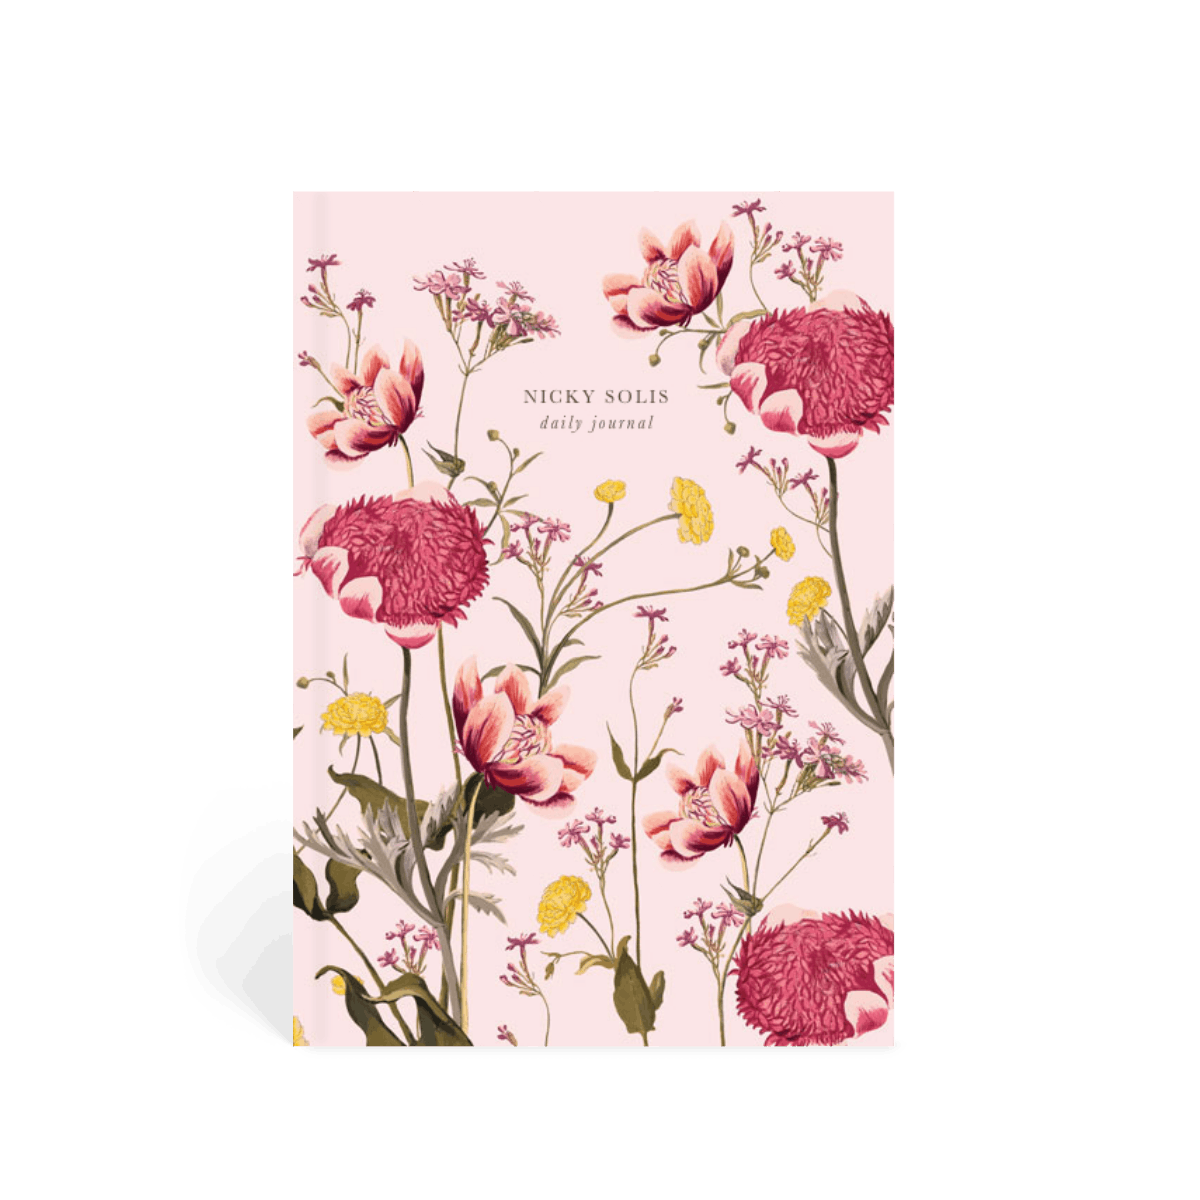 Https%3a%2f%2fwww.papier.com%2fproduct image%2f94310%2f25%2fpink botanical 23600 front 1571933491.png?ixlib=rb 1.1